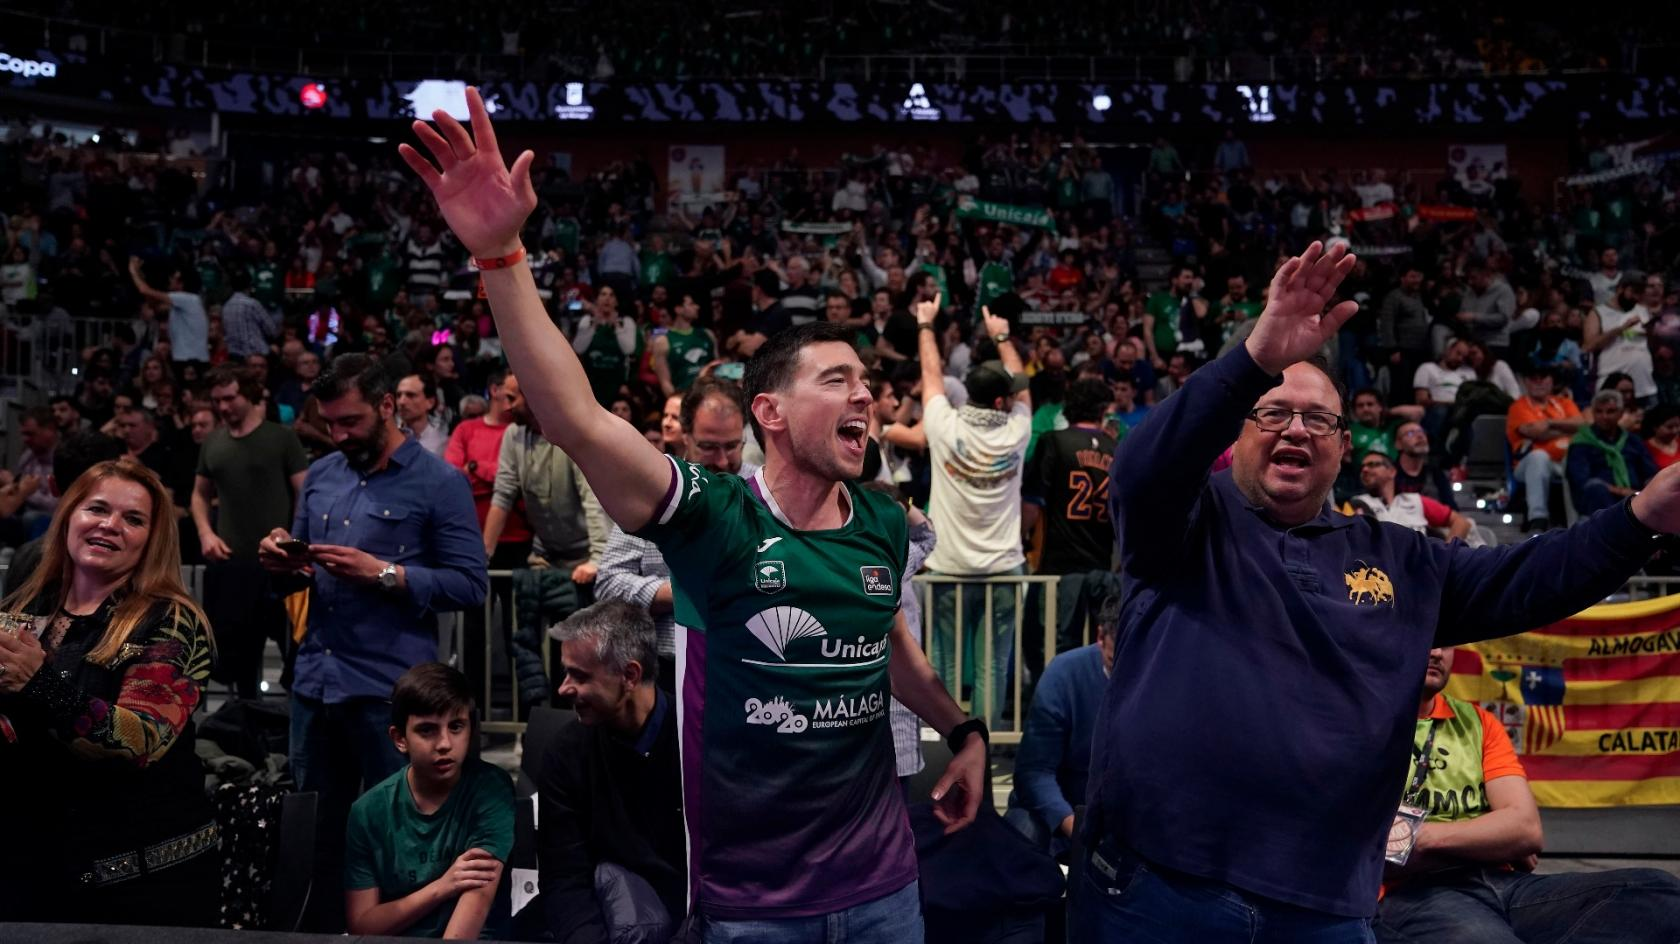 Unicaja renew all its season ticket holders paying nothing